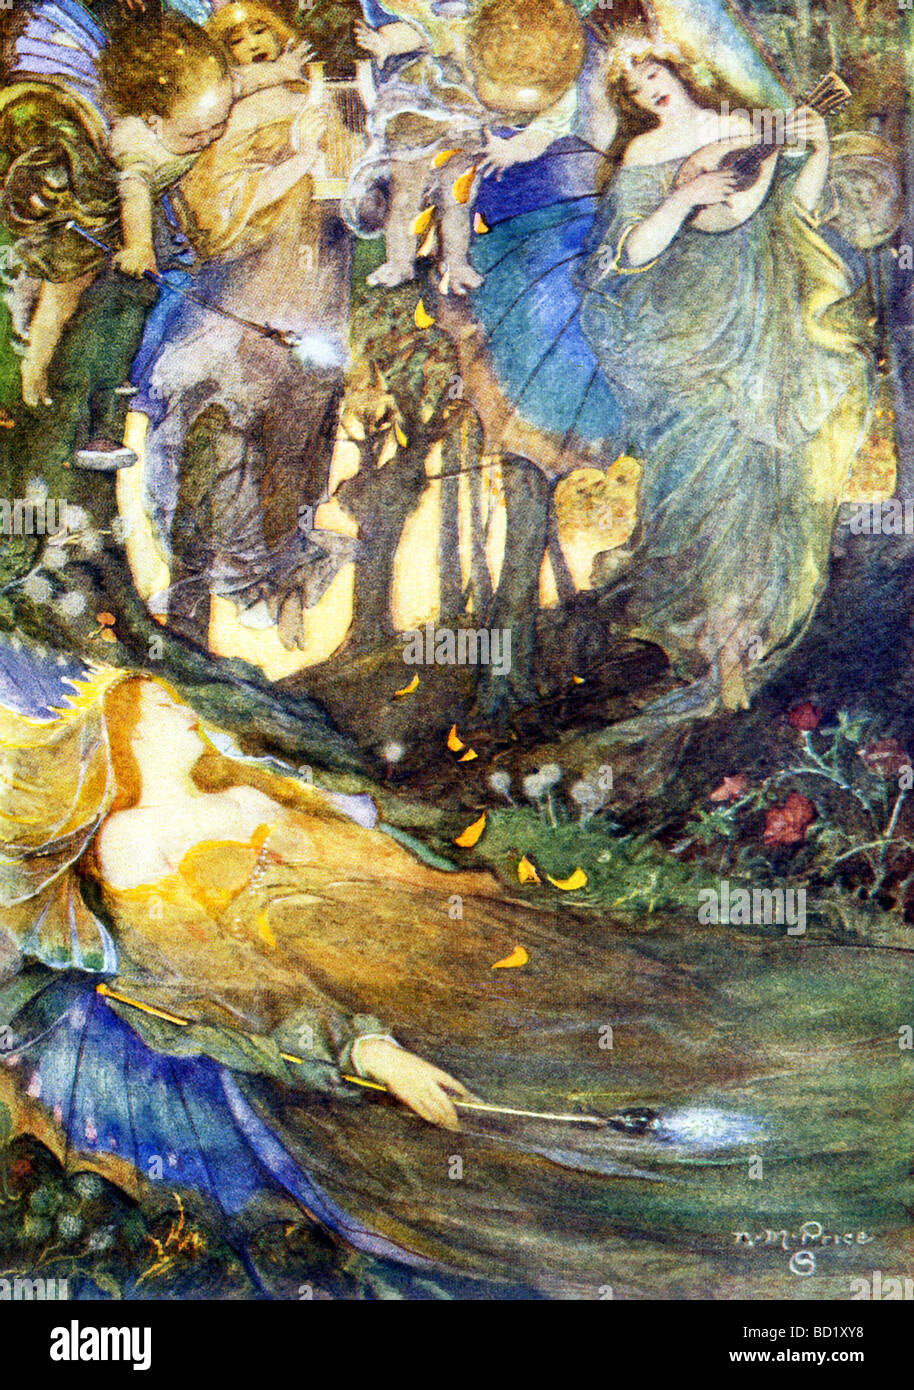 Fairies are shown singing Titania (from Shakespeare's A Midsummer Night's Dream), the queen of the fairies, - Stock Image